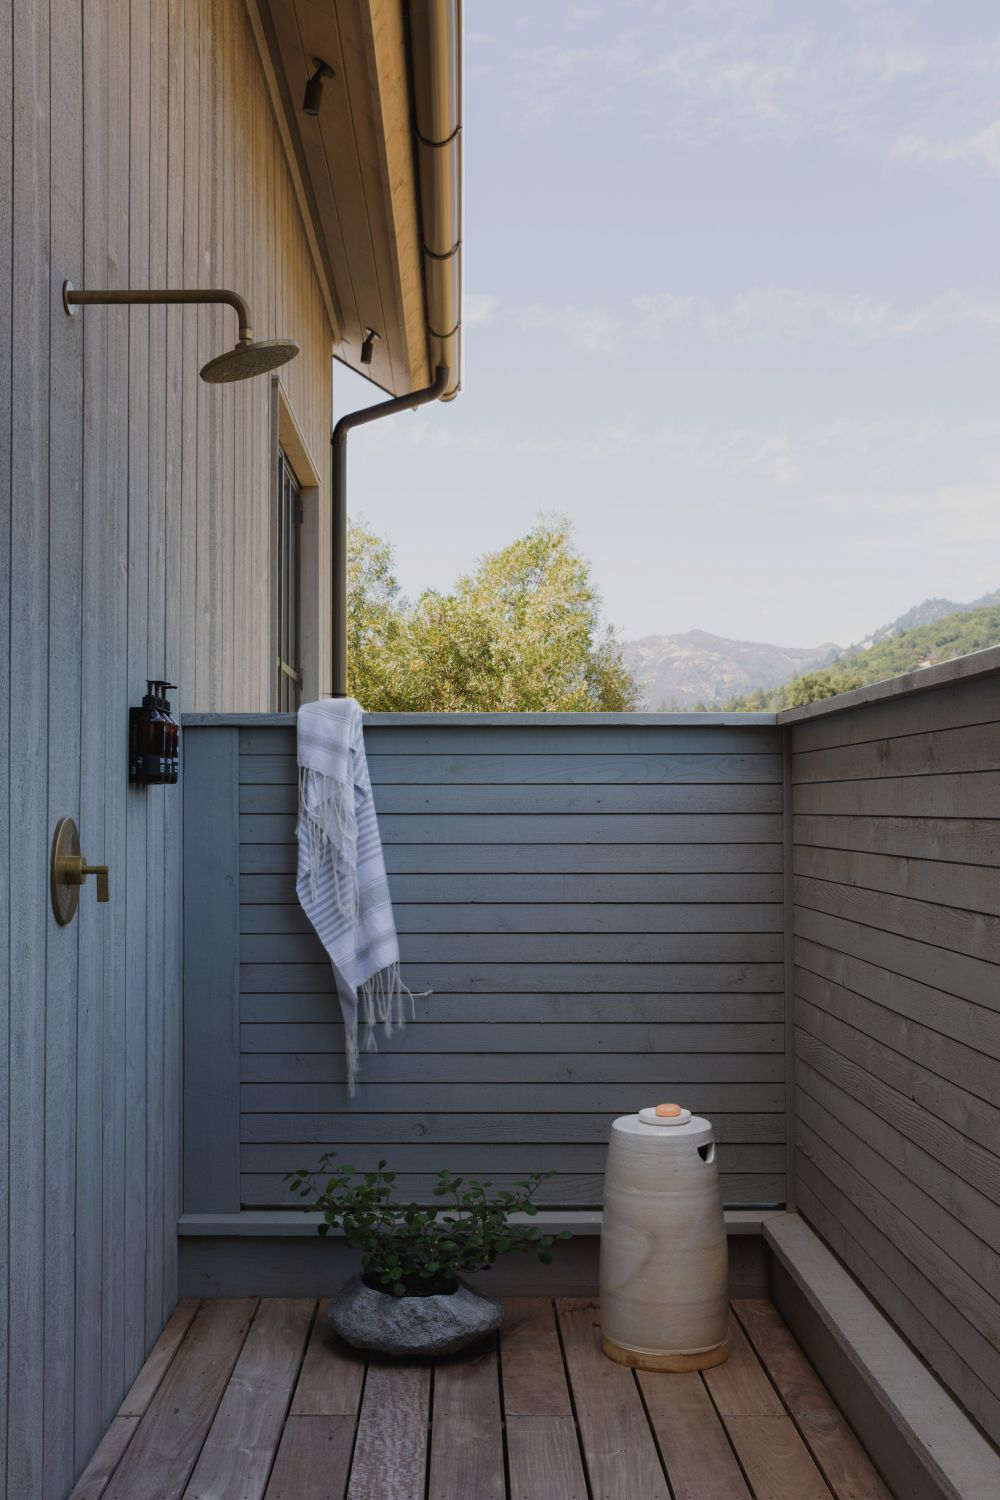 An outdoor shower complements the poolhouse, making the most of this wonderful location